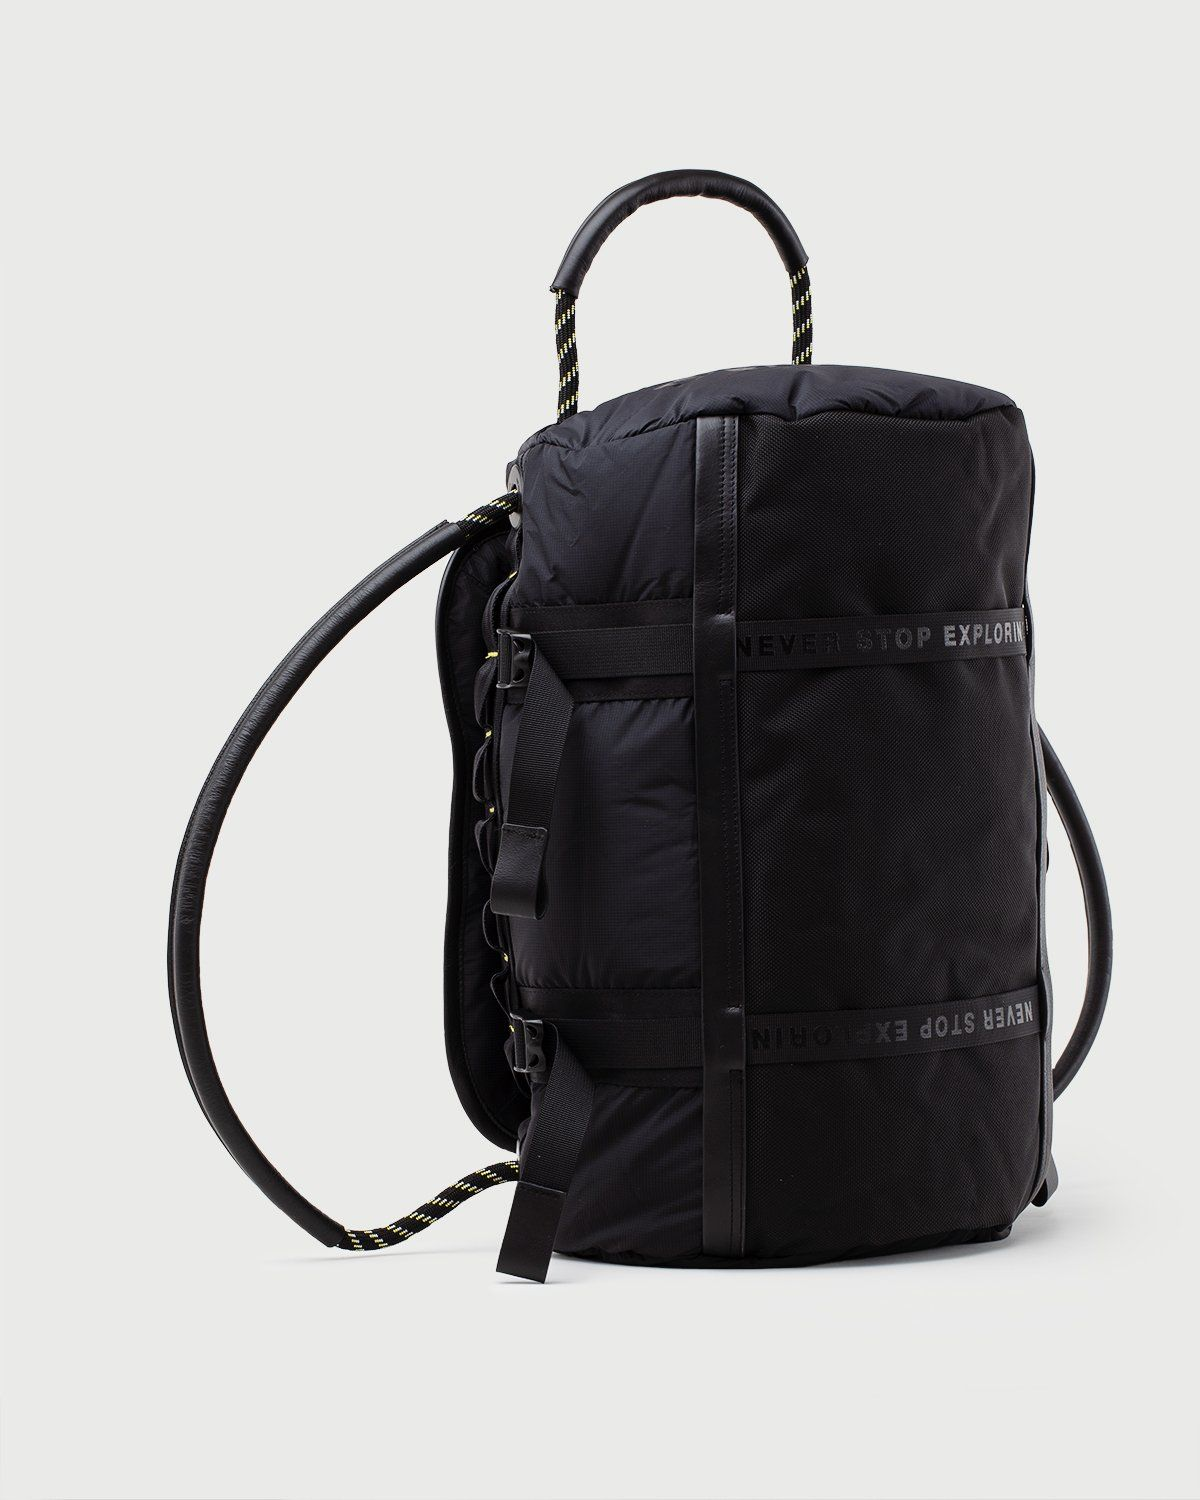 The North Face Black Series - Base Camp Duffel Black - Image 3